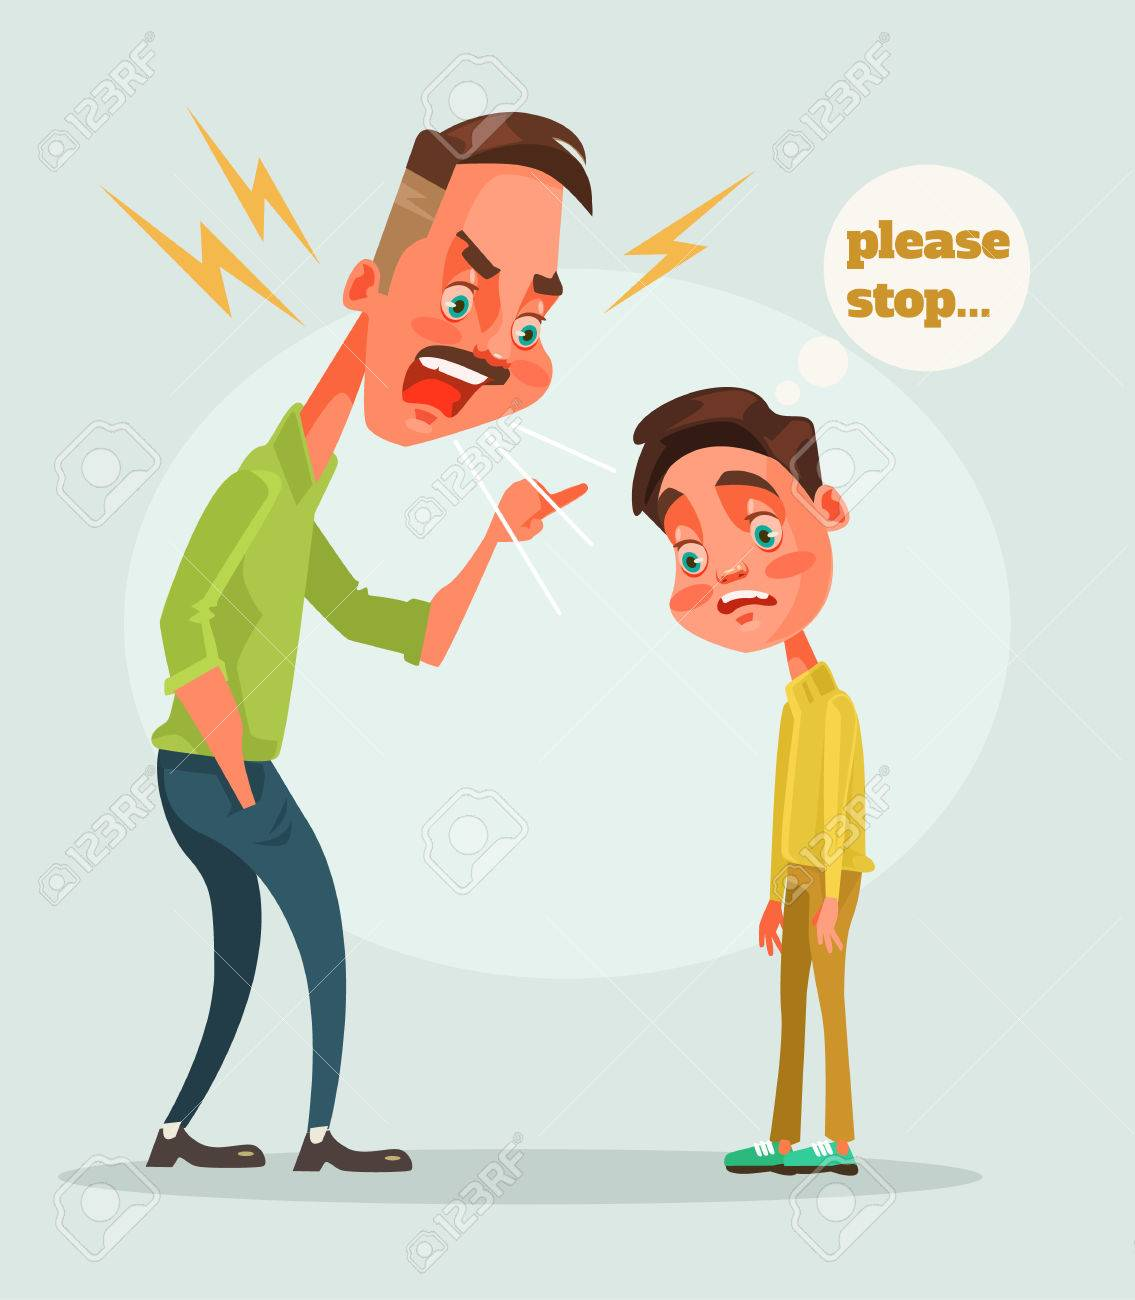 Father character scolds son. Vector flat cartoon illustration - 70665237